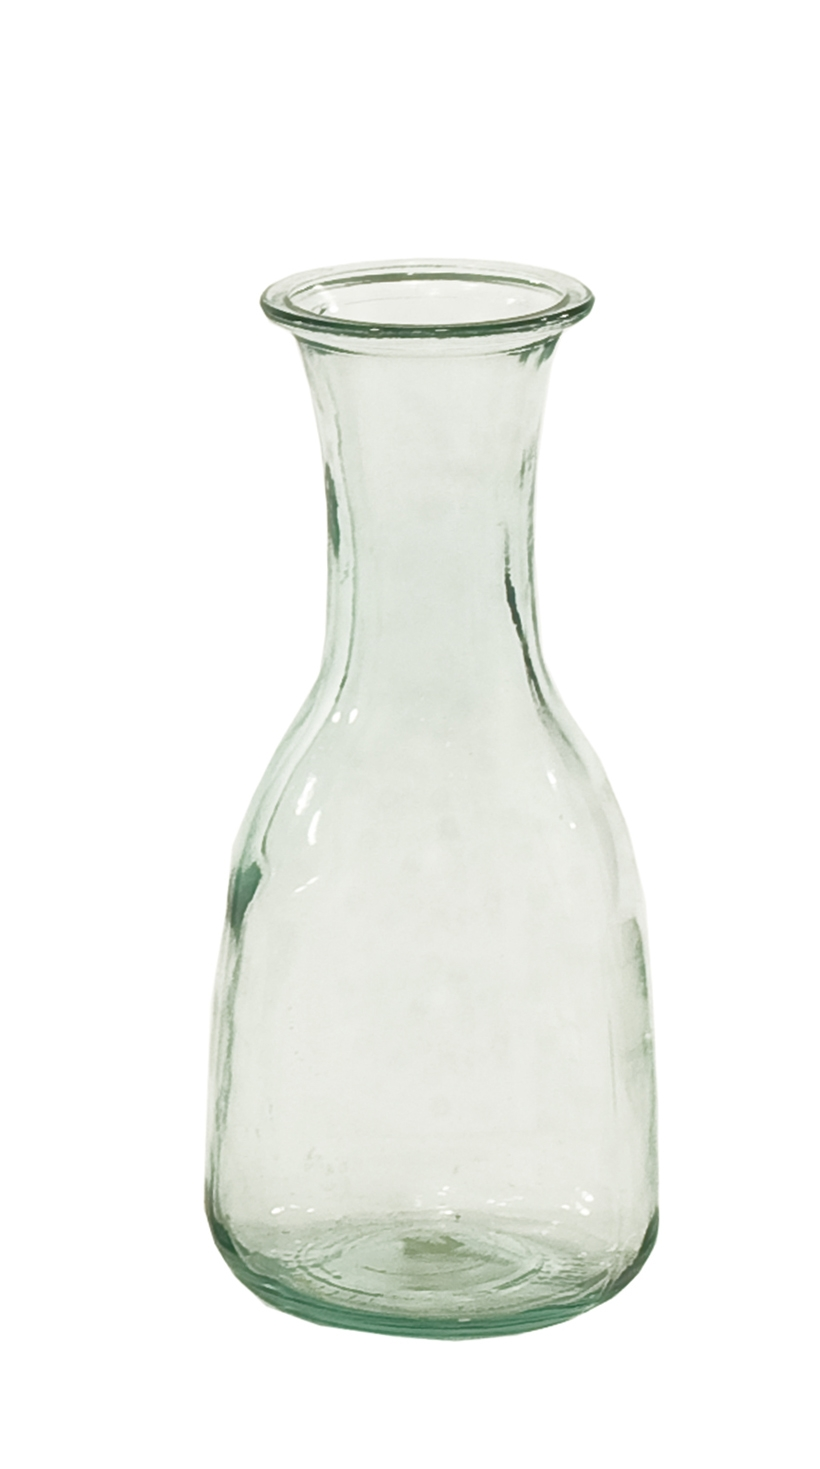 Glass Carafe, 4.5wx10h